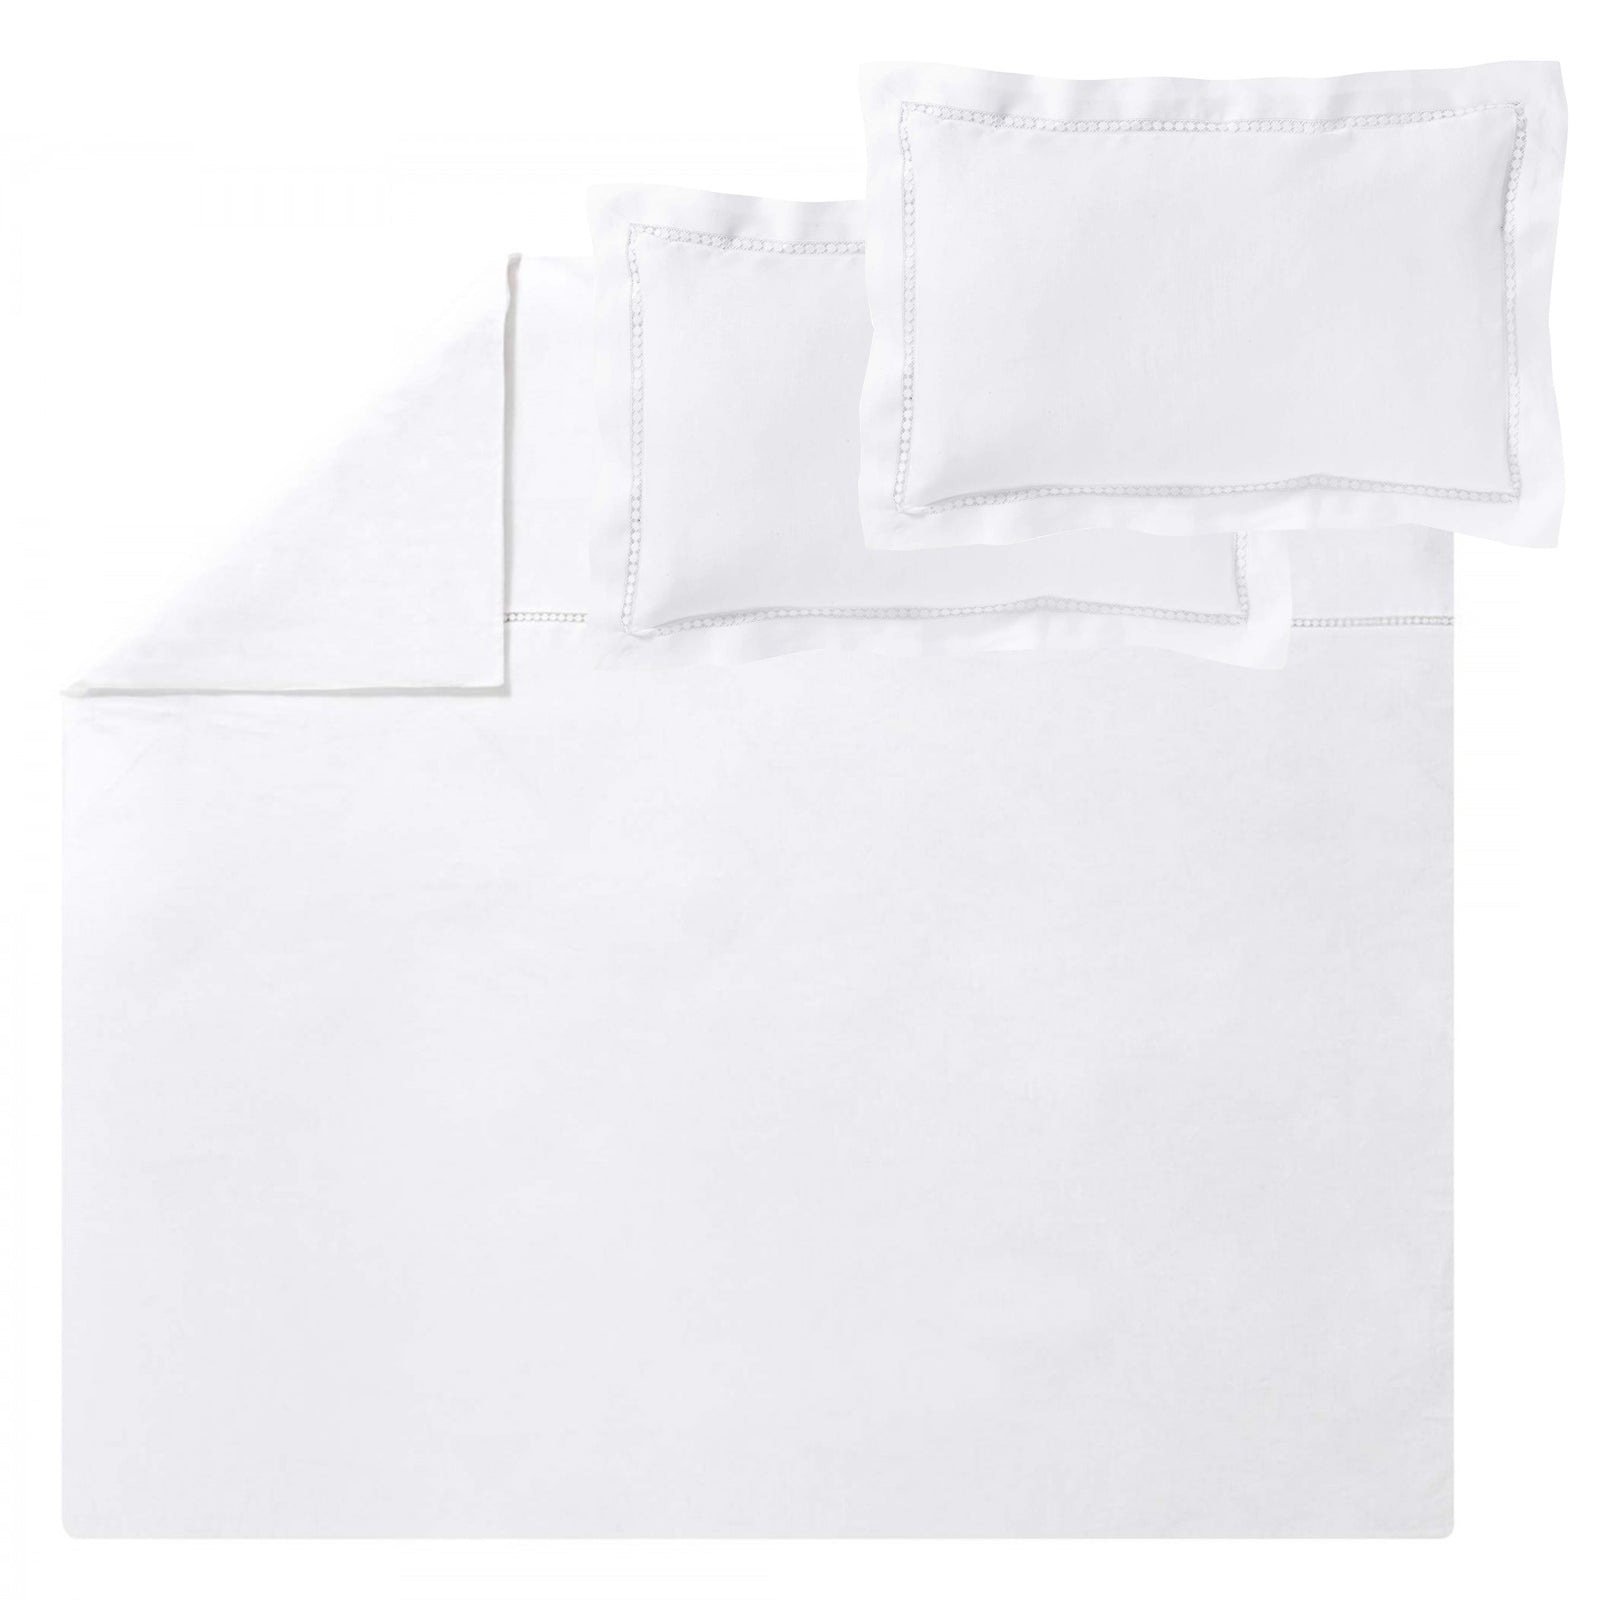 Le Jour Duvet Cover Set